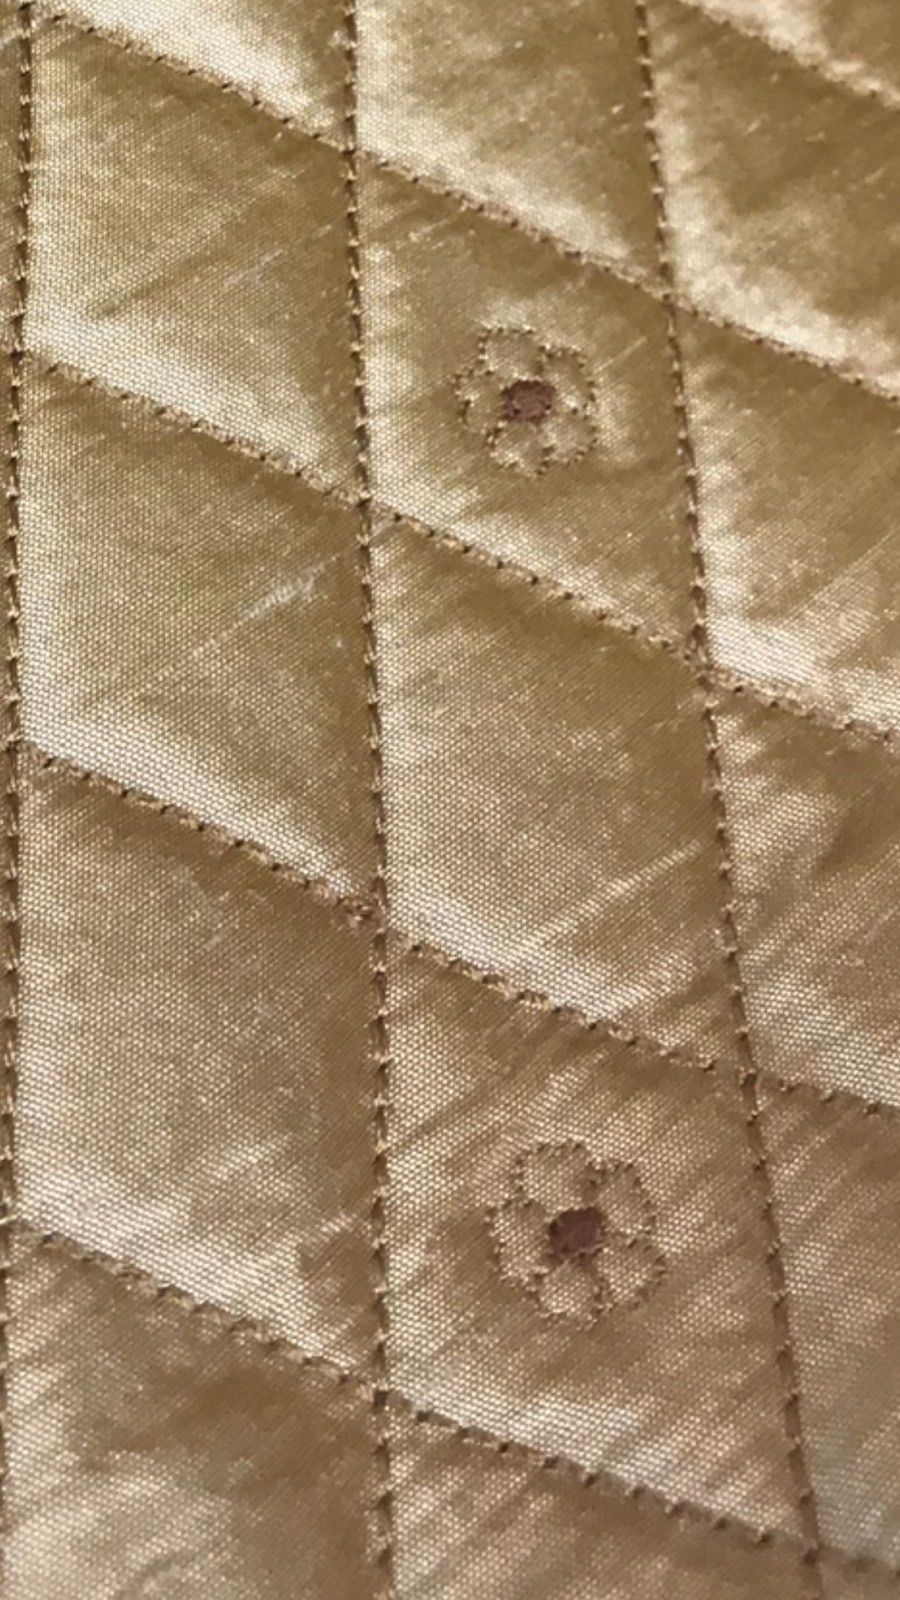 Imported Belgium 100% Silk Quilted Taffeta With Embroidery Fabric- Golden Honey - Fancy Styles Fabric Pierre Frey Lee Jofa Brunschwig & Fils